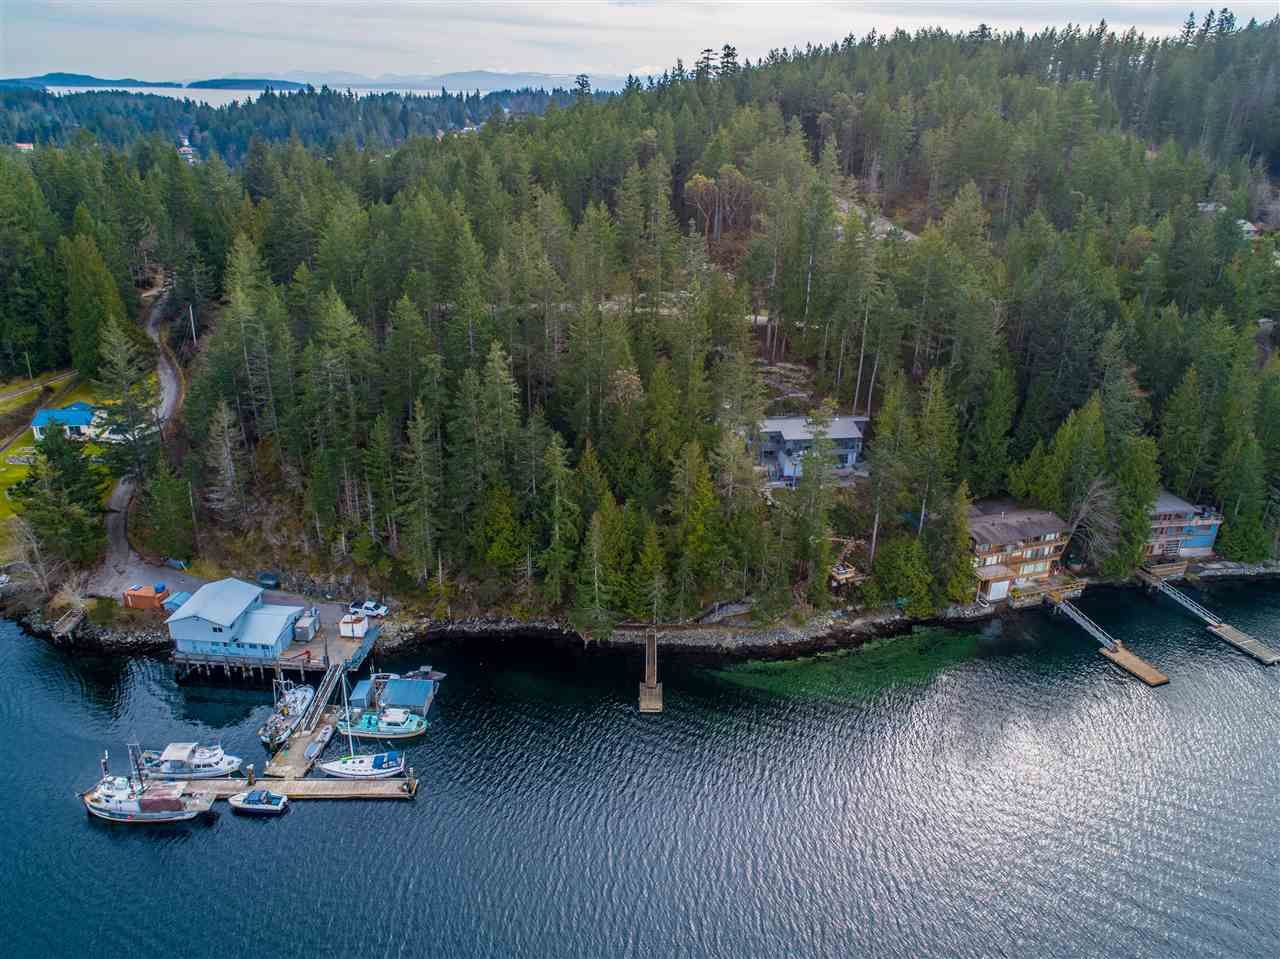 Photo 9: Photos: 4216 FRANCIS PENINSULA Road in Madeira Park: Pender Harbour Egmont House for sale (Sunshine Coast)  : MLS®# R2549311